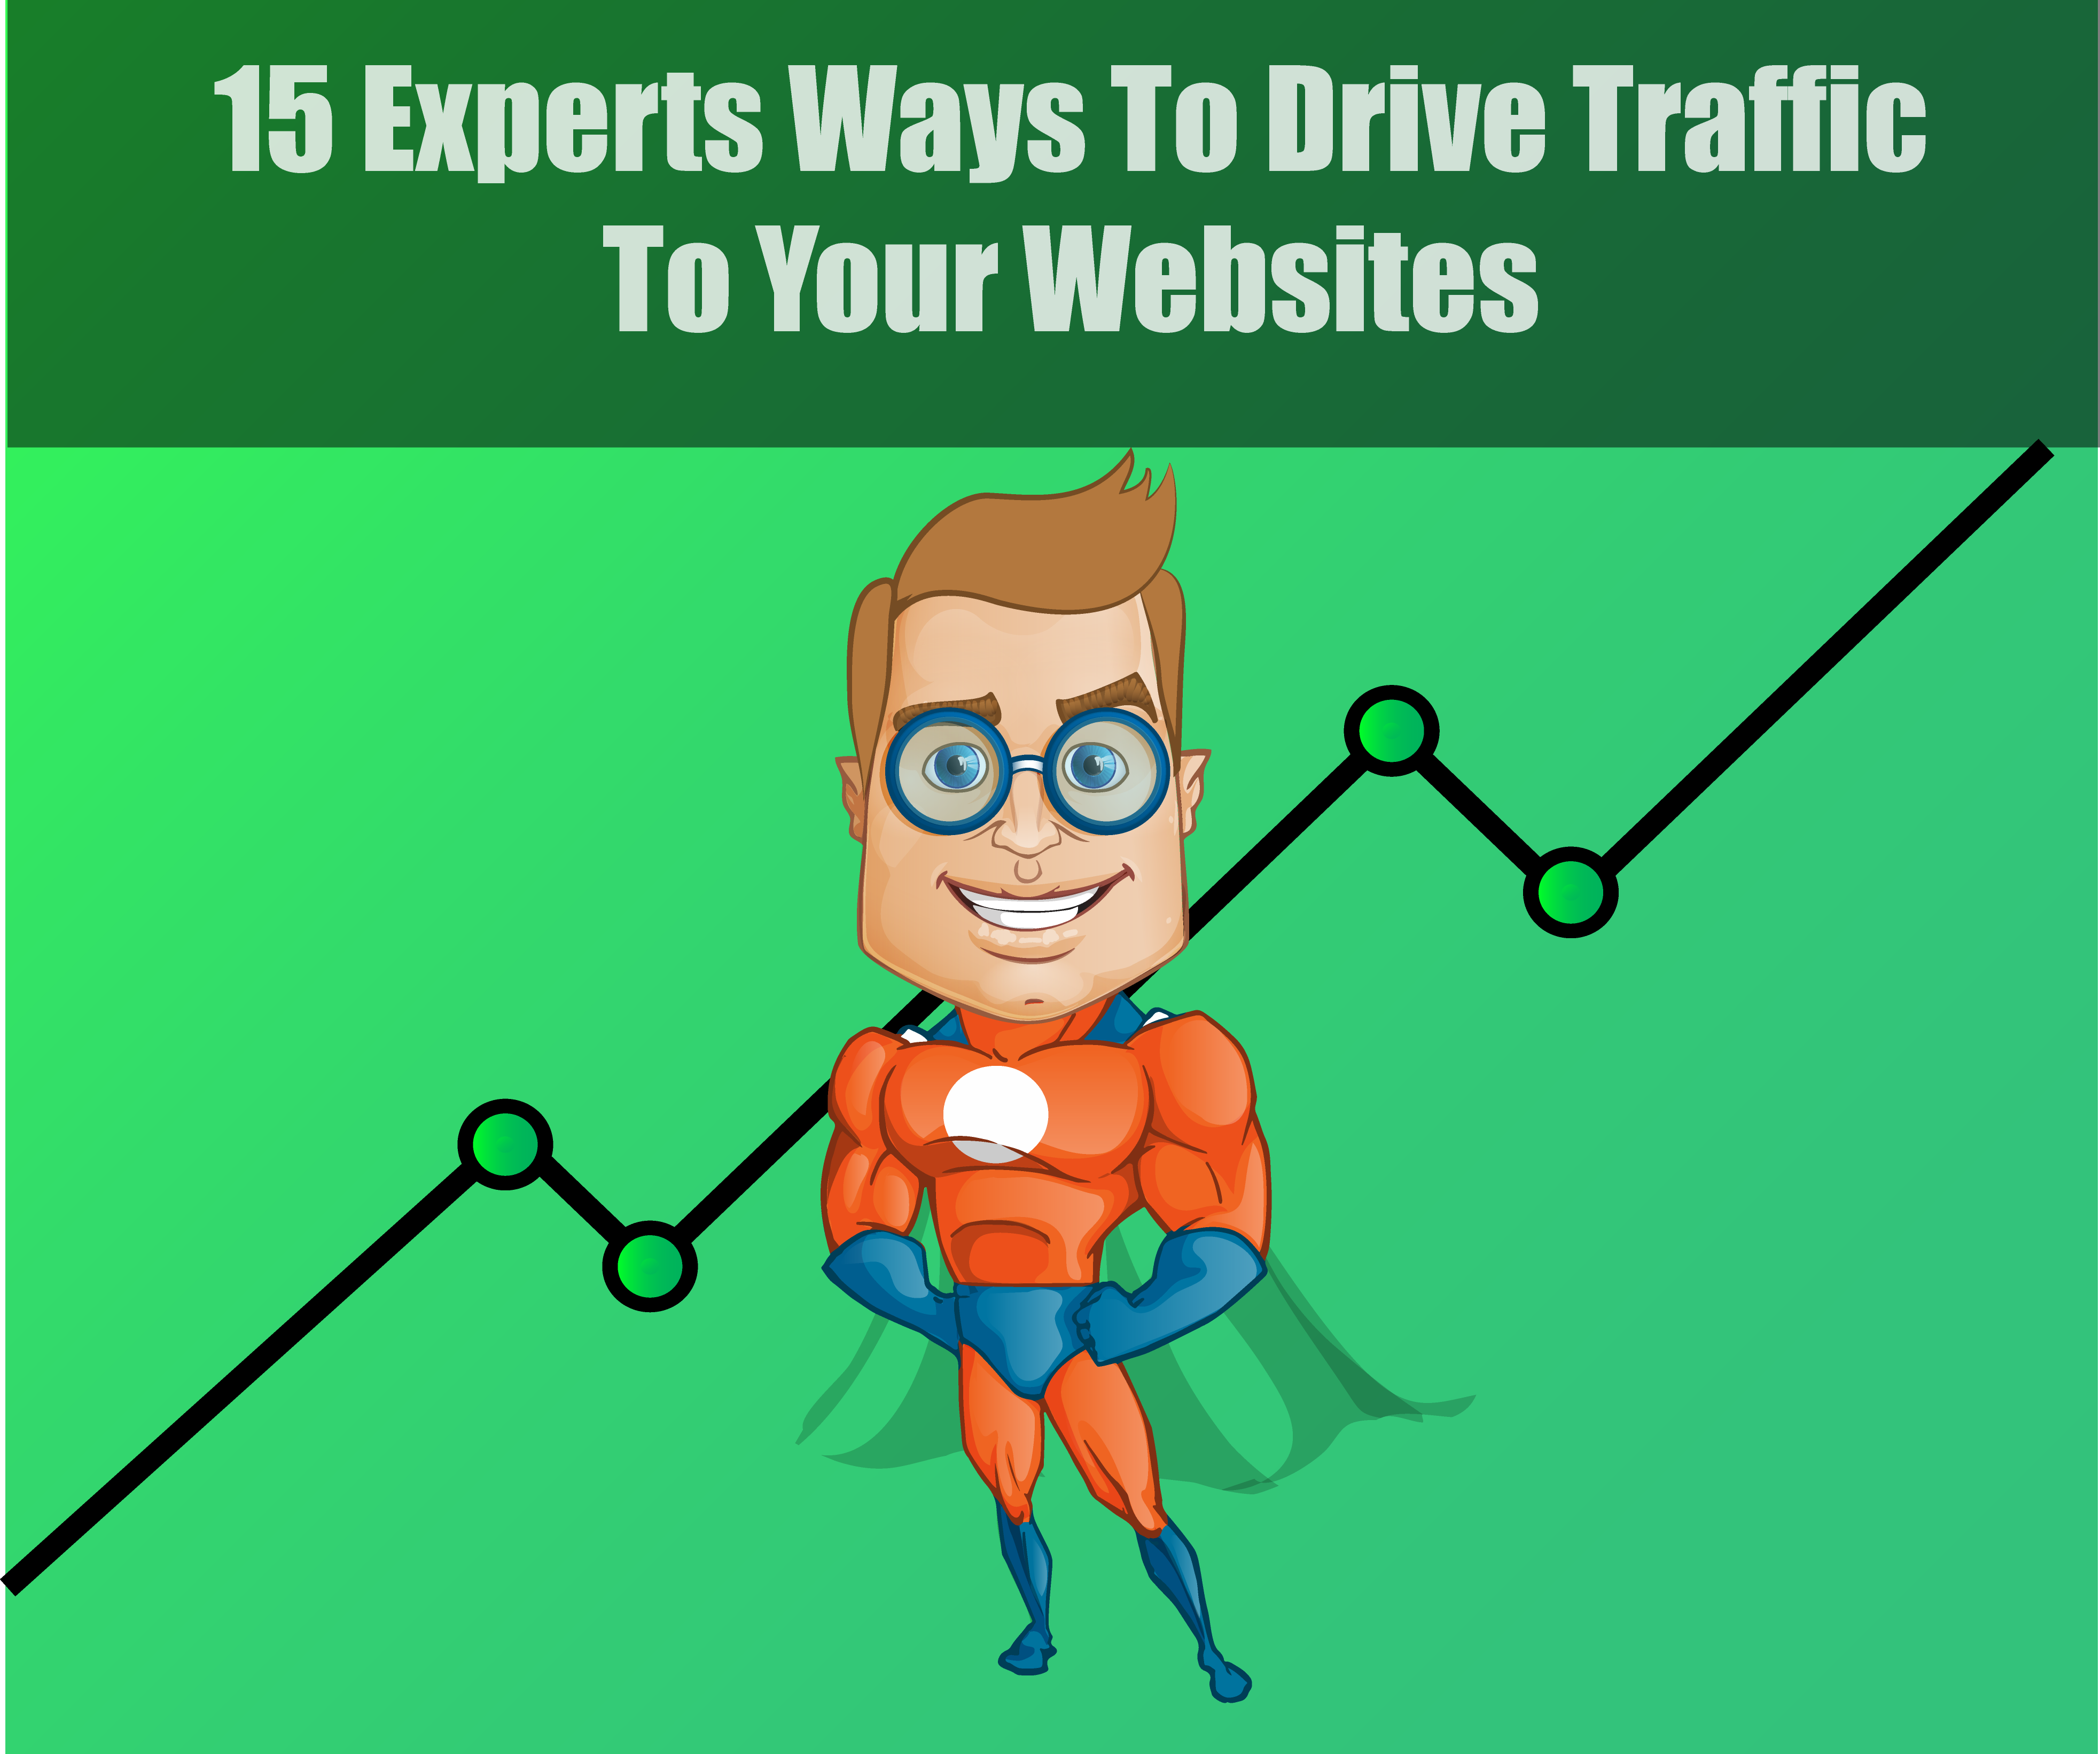 15 Experts Ways to drive huge Traffic To Your Websites